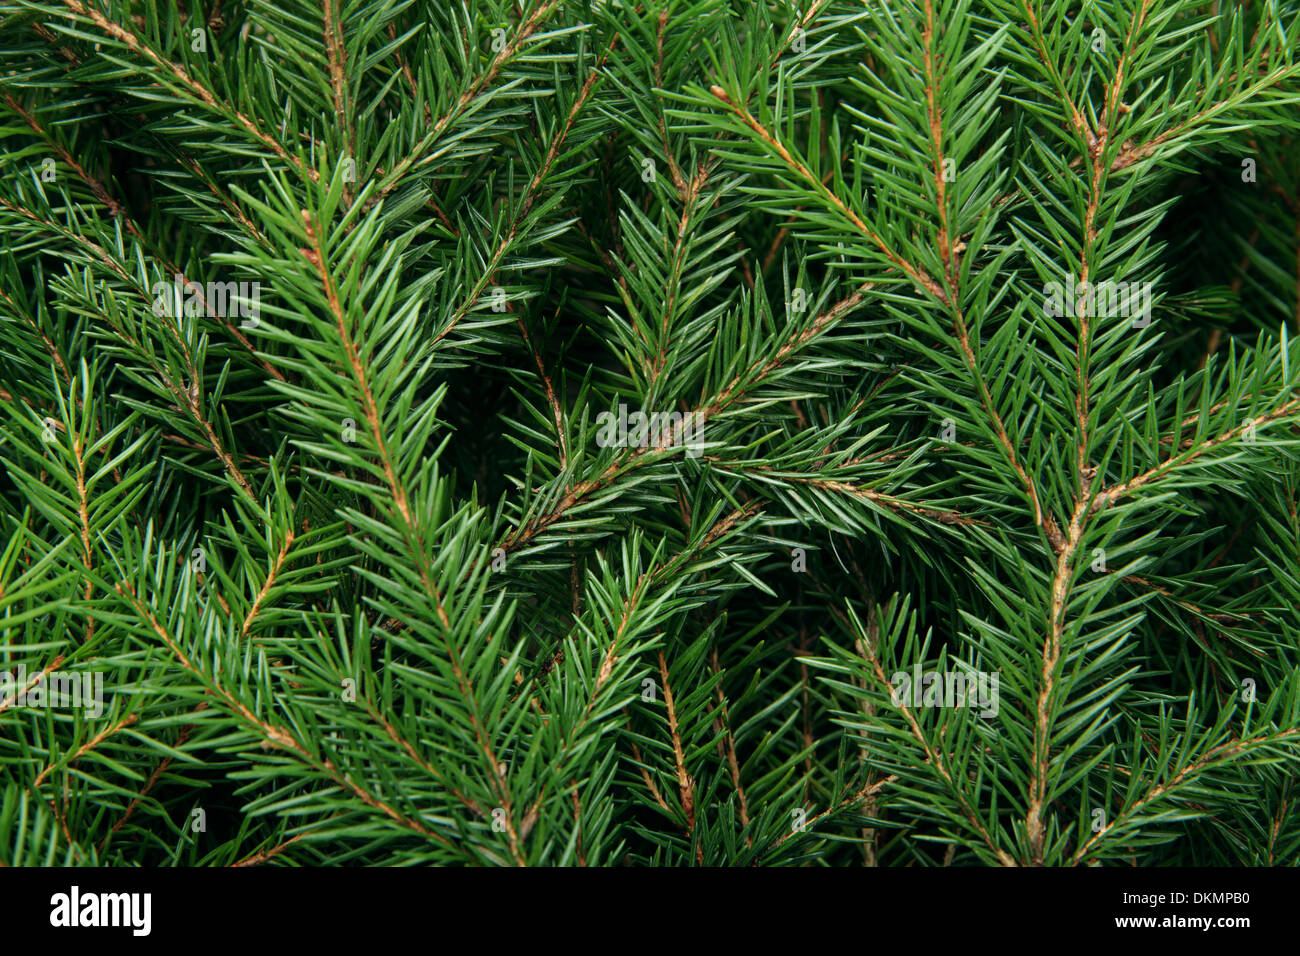 background of christmas tree branches stock image - Christmas Tree Branches